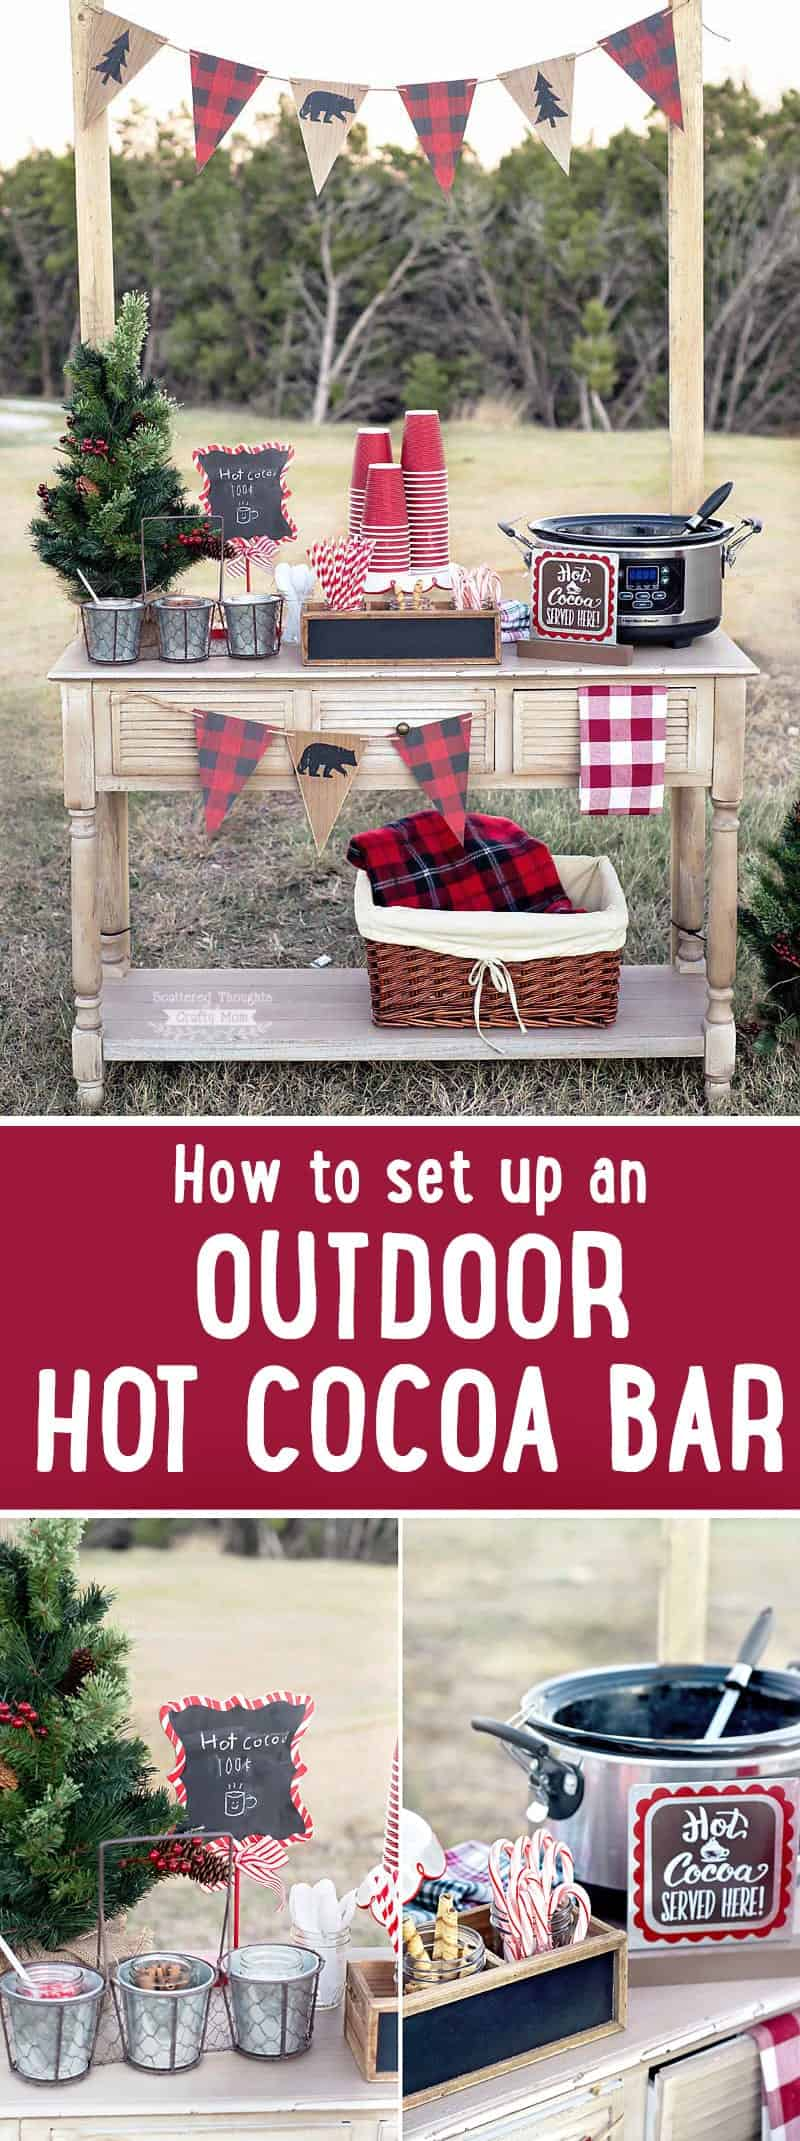 How to make an Outdoor Hot Chocolate Bar: This DIY Outdoor Hot Cocoa Bar is perfect for serving hot cocoa, coffee and other warm beverages to party guests.